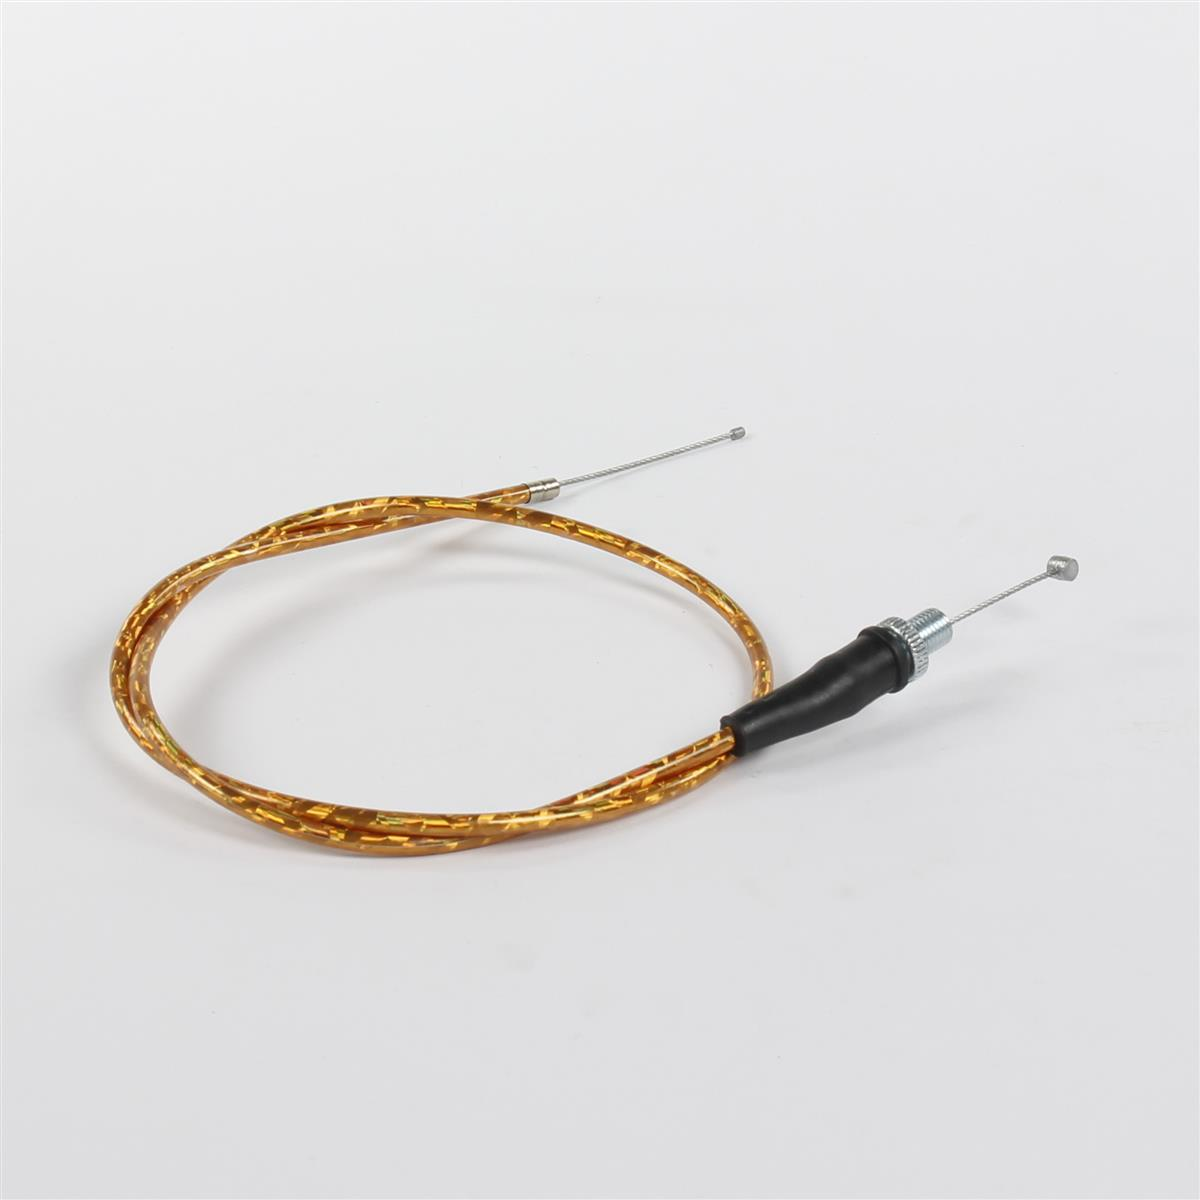 cable-daccelerateur-850mm-970mm-jaune